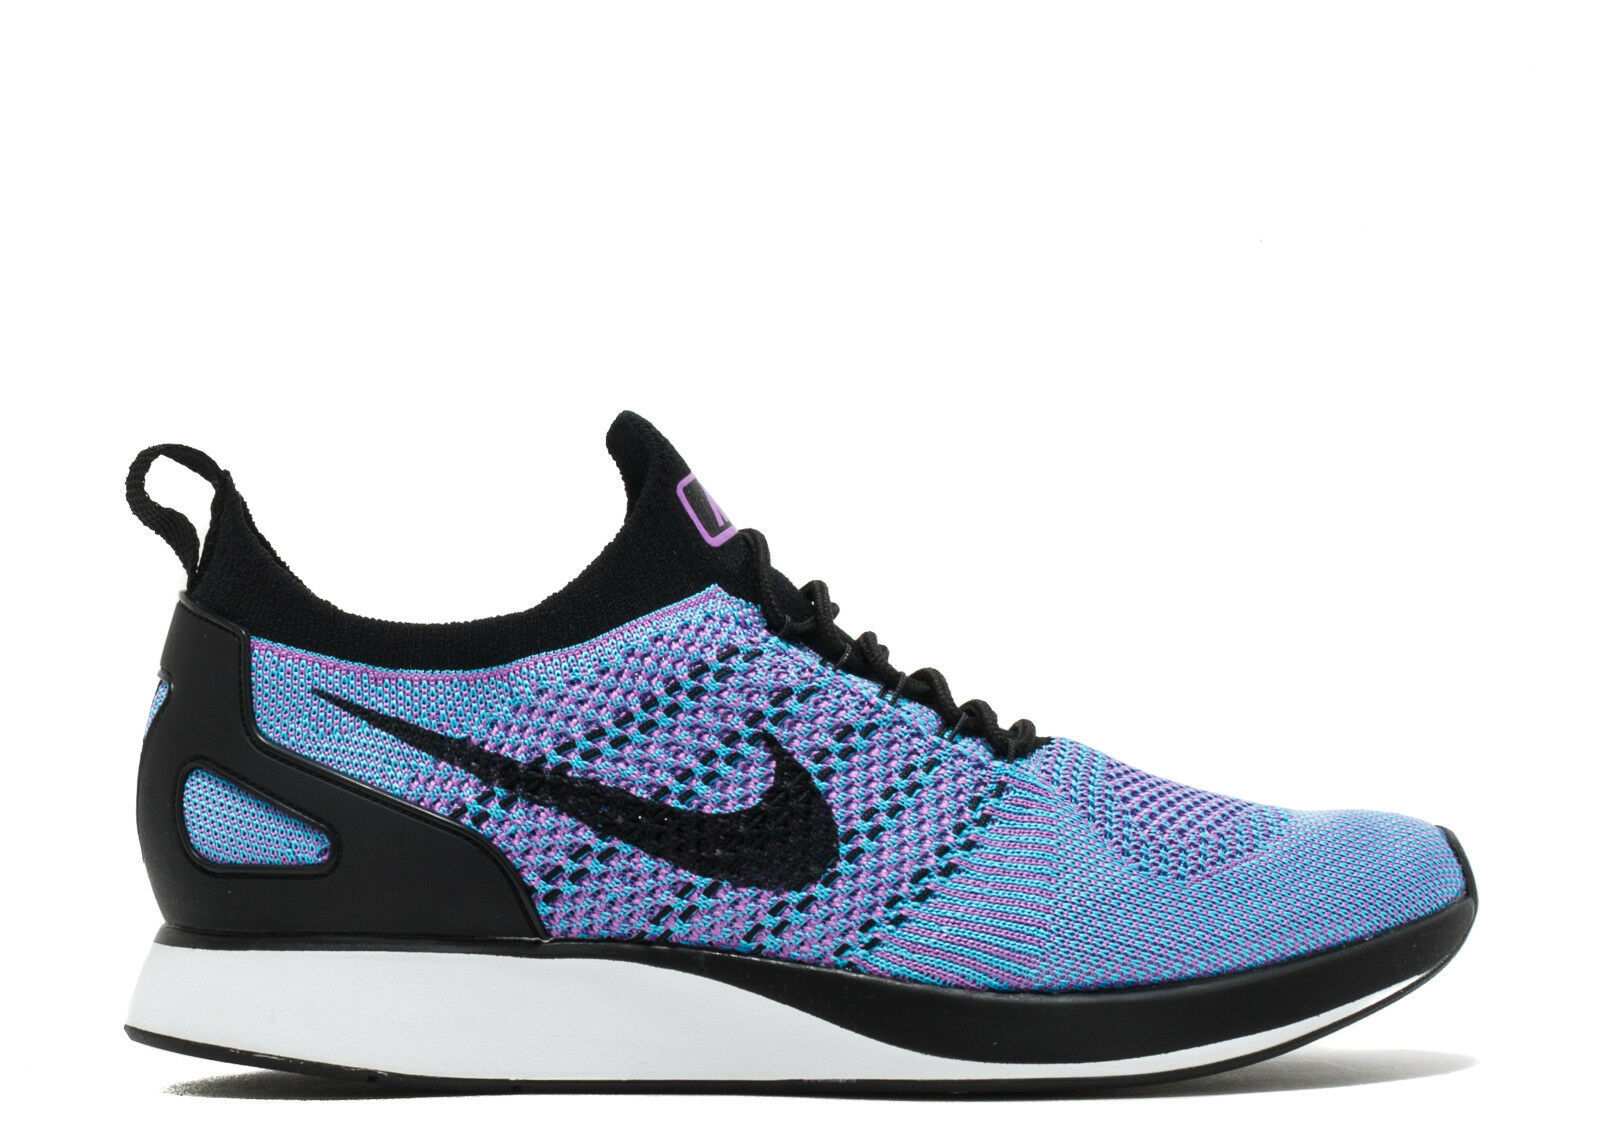 Men's Nike Air Zoom Mariah Flyknit Racer Running shoes - 14 (BRIGHT purple BLACK